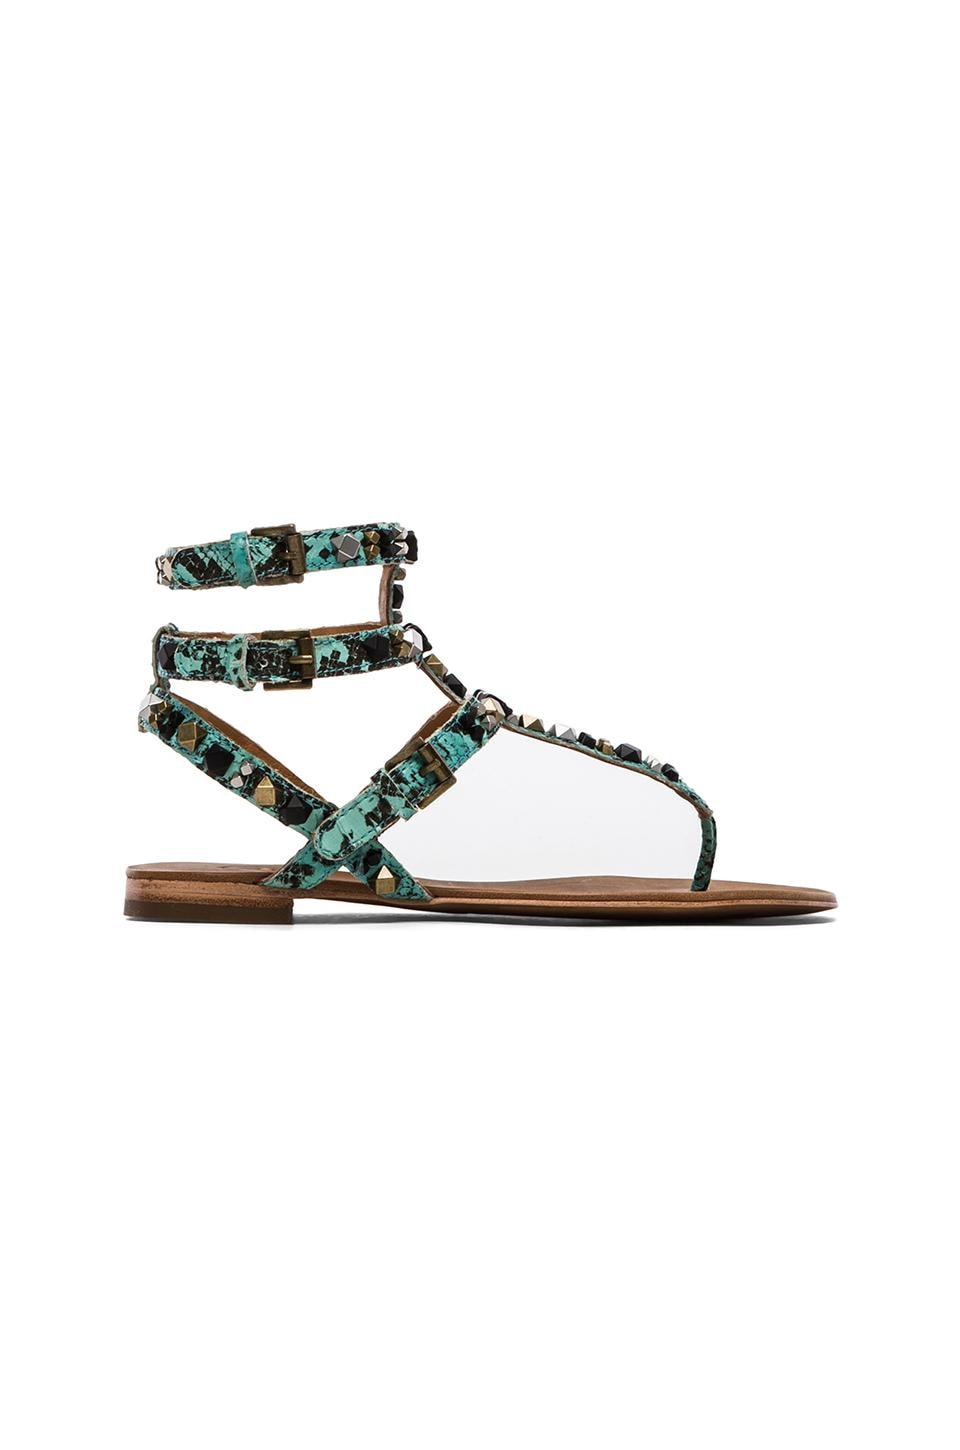 Ash Mambo Sandals in Turquoise & Black & Antic Silver & Antic Gold